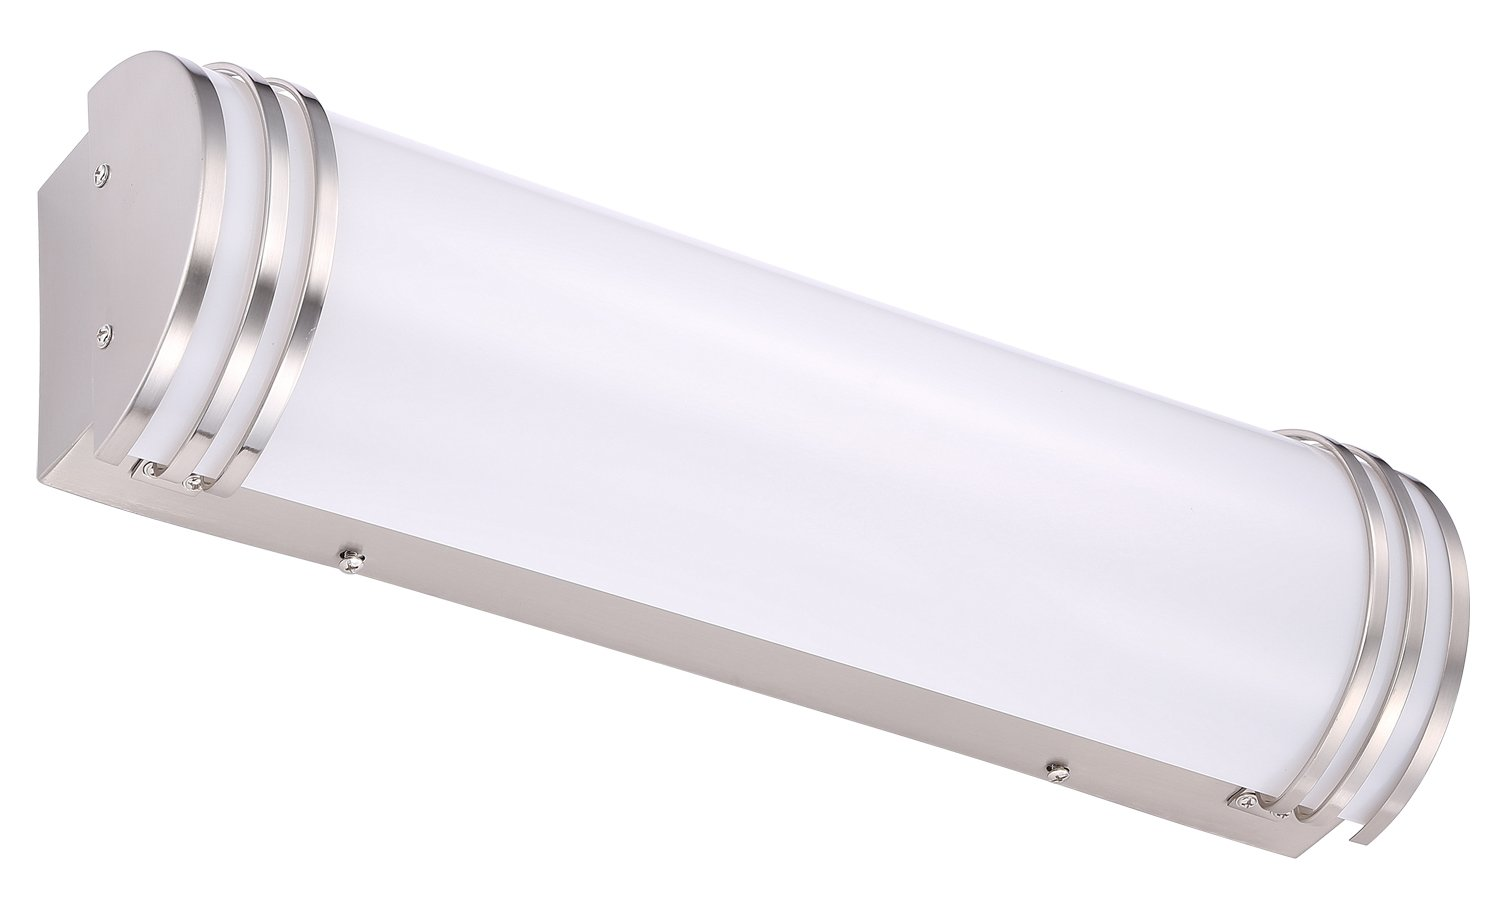 Cloudy Bay LED Bath Vanity Light 24-inch 4000K Cool White,Dimmable 24W,Brushed Nickel by CLOUDY BAY (Image #1)